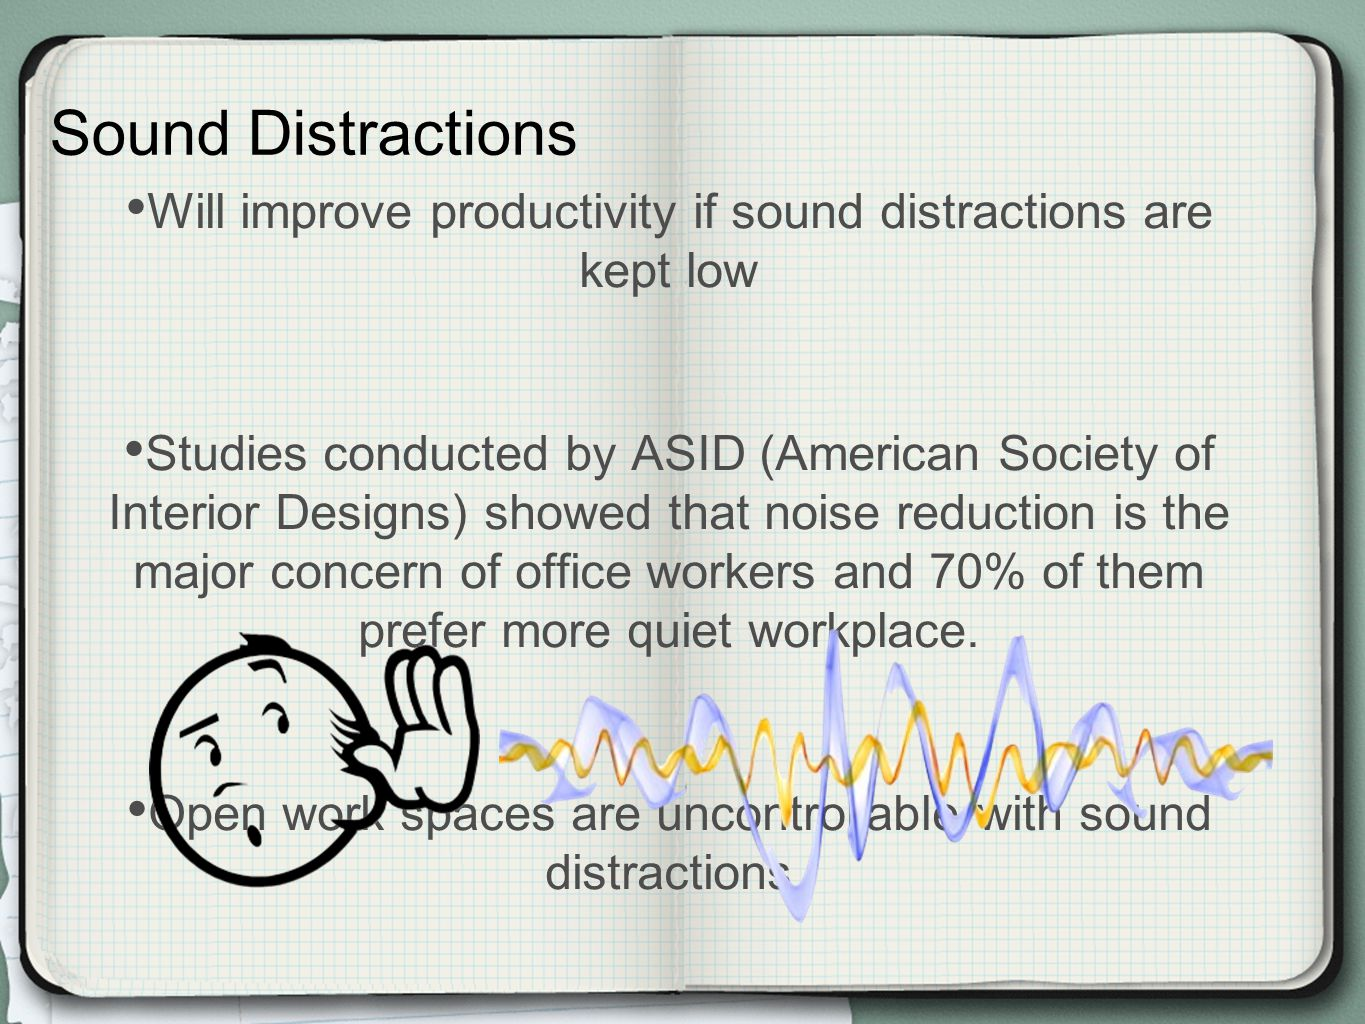 Will improve productivity if sound distractions are kept low Studies conducted by ASID (American Society of Interior Designs) showed that noise reduction is the major concern of office workers and 70% of them prefer more quiet workplace.